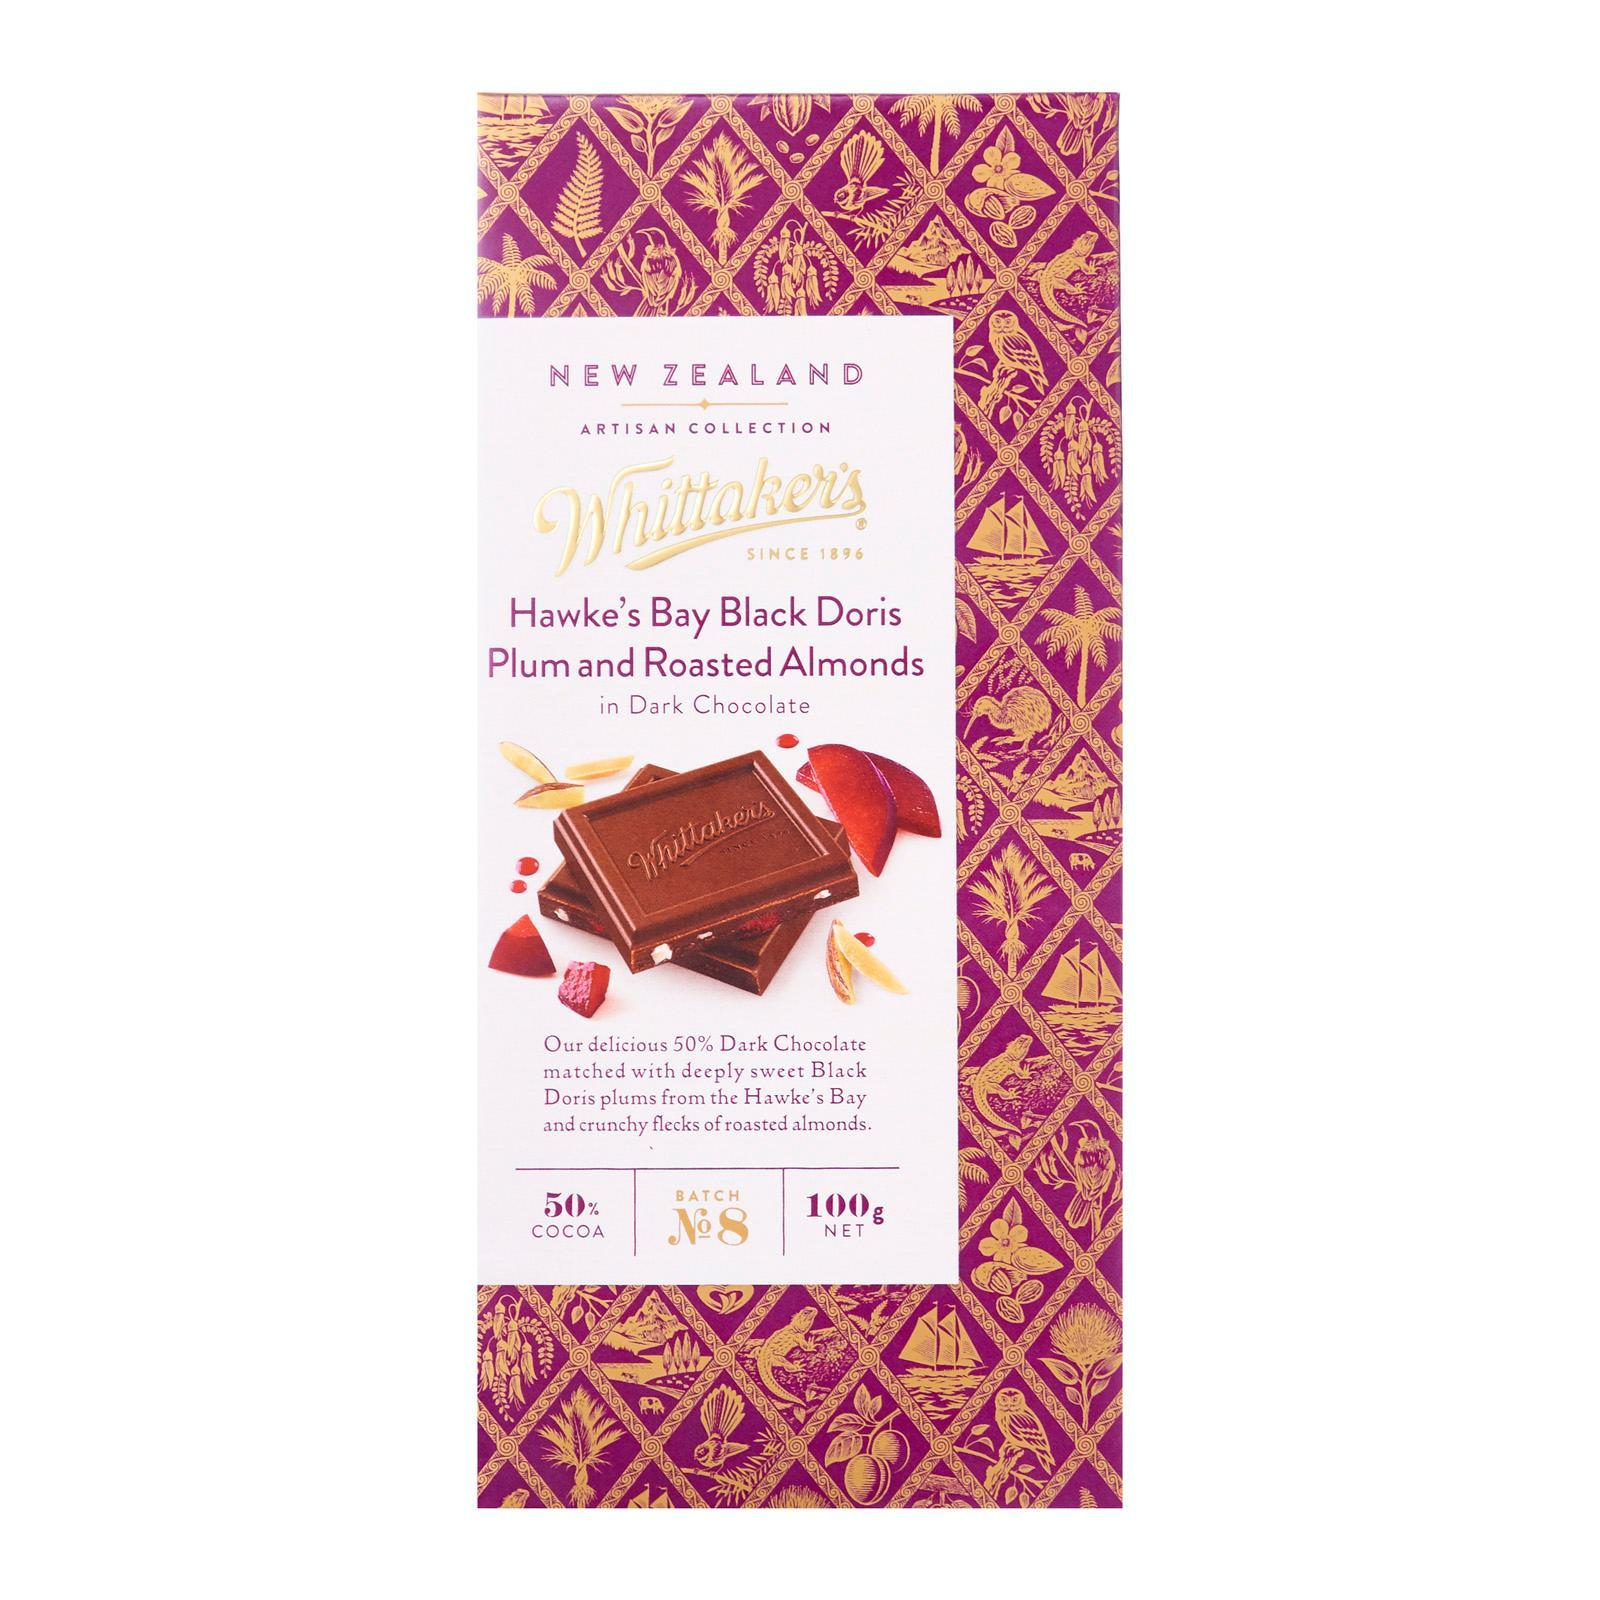 Whittaker's Hawke's Bay Black Doris Plum and Roasted Almonds Chocolate Artisan Collection